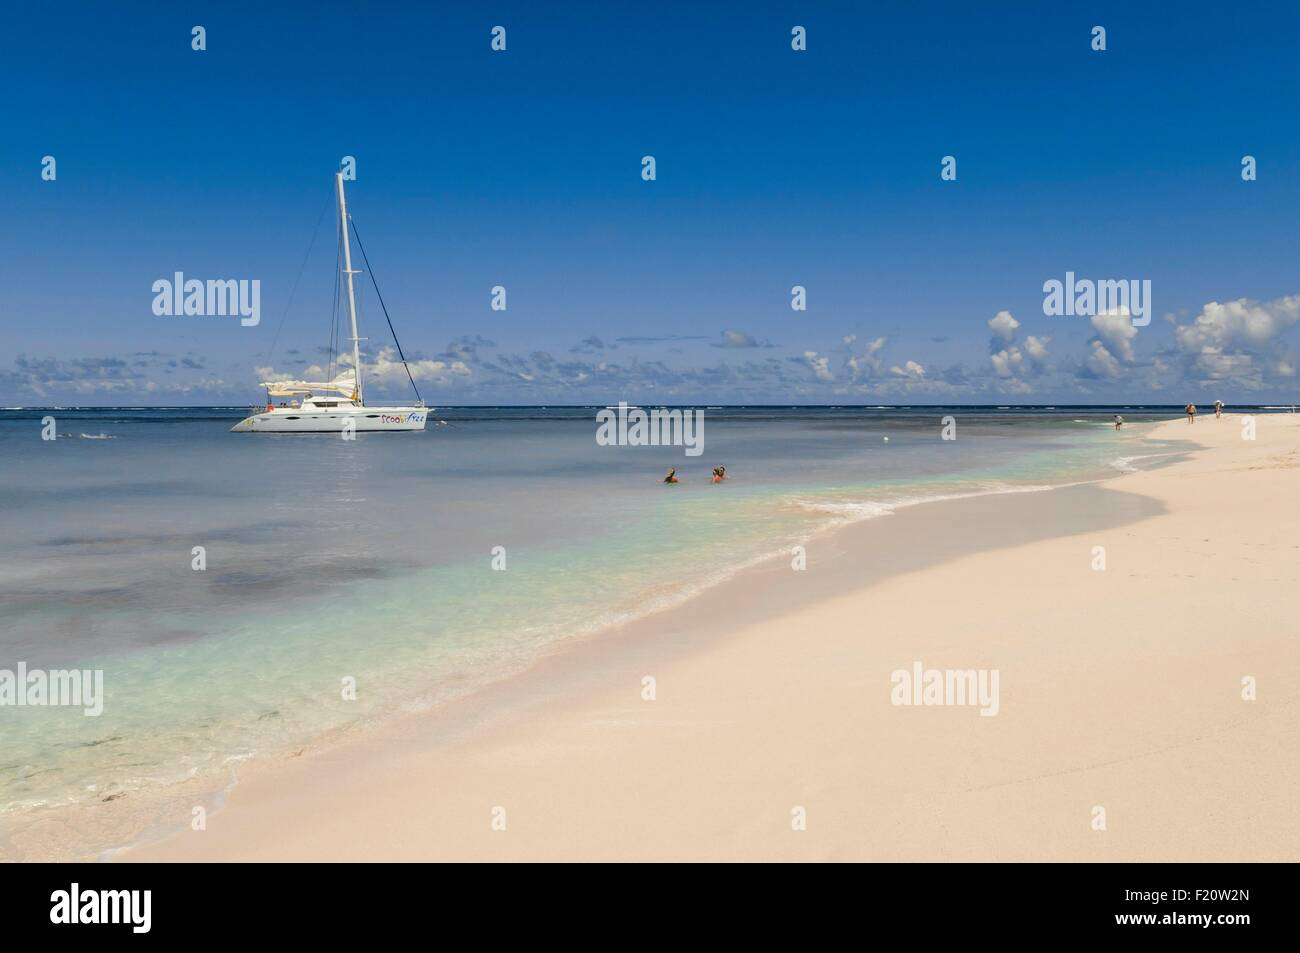 Anguilla Island (Bristish West Indies), catamaran boat in the lagoon of Preakly Pear little island - Stock Image